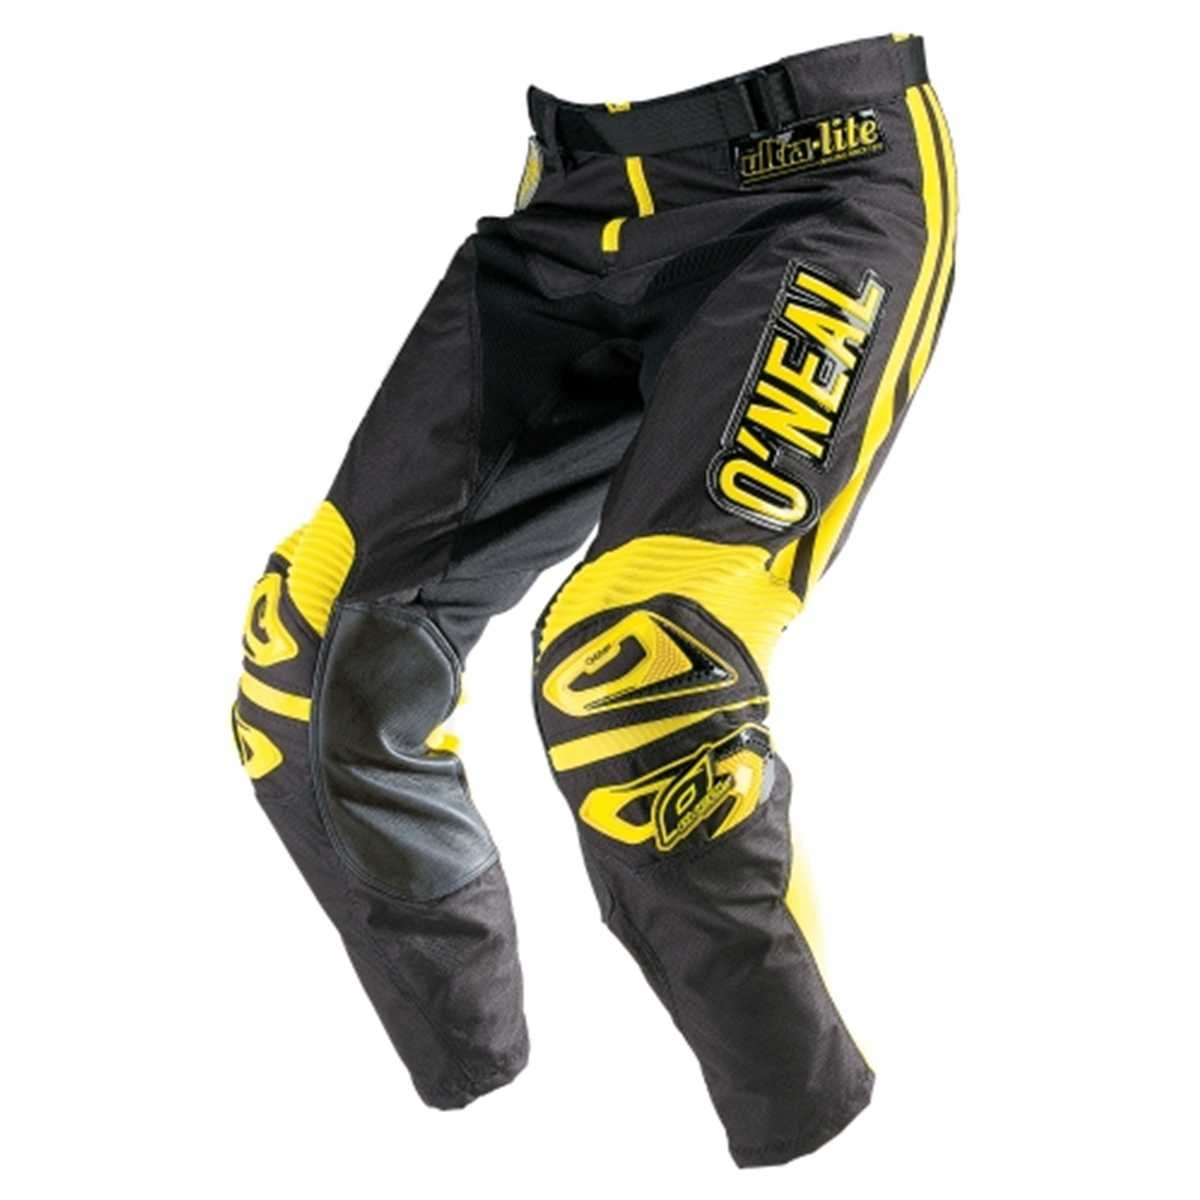 Black//Yellow, Size 36 ONeal Ultra Lite Limited Edition 70 Pants